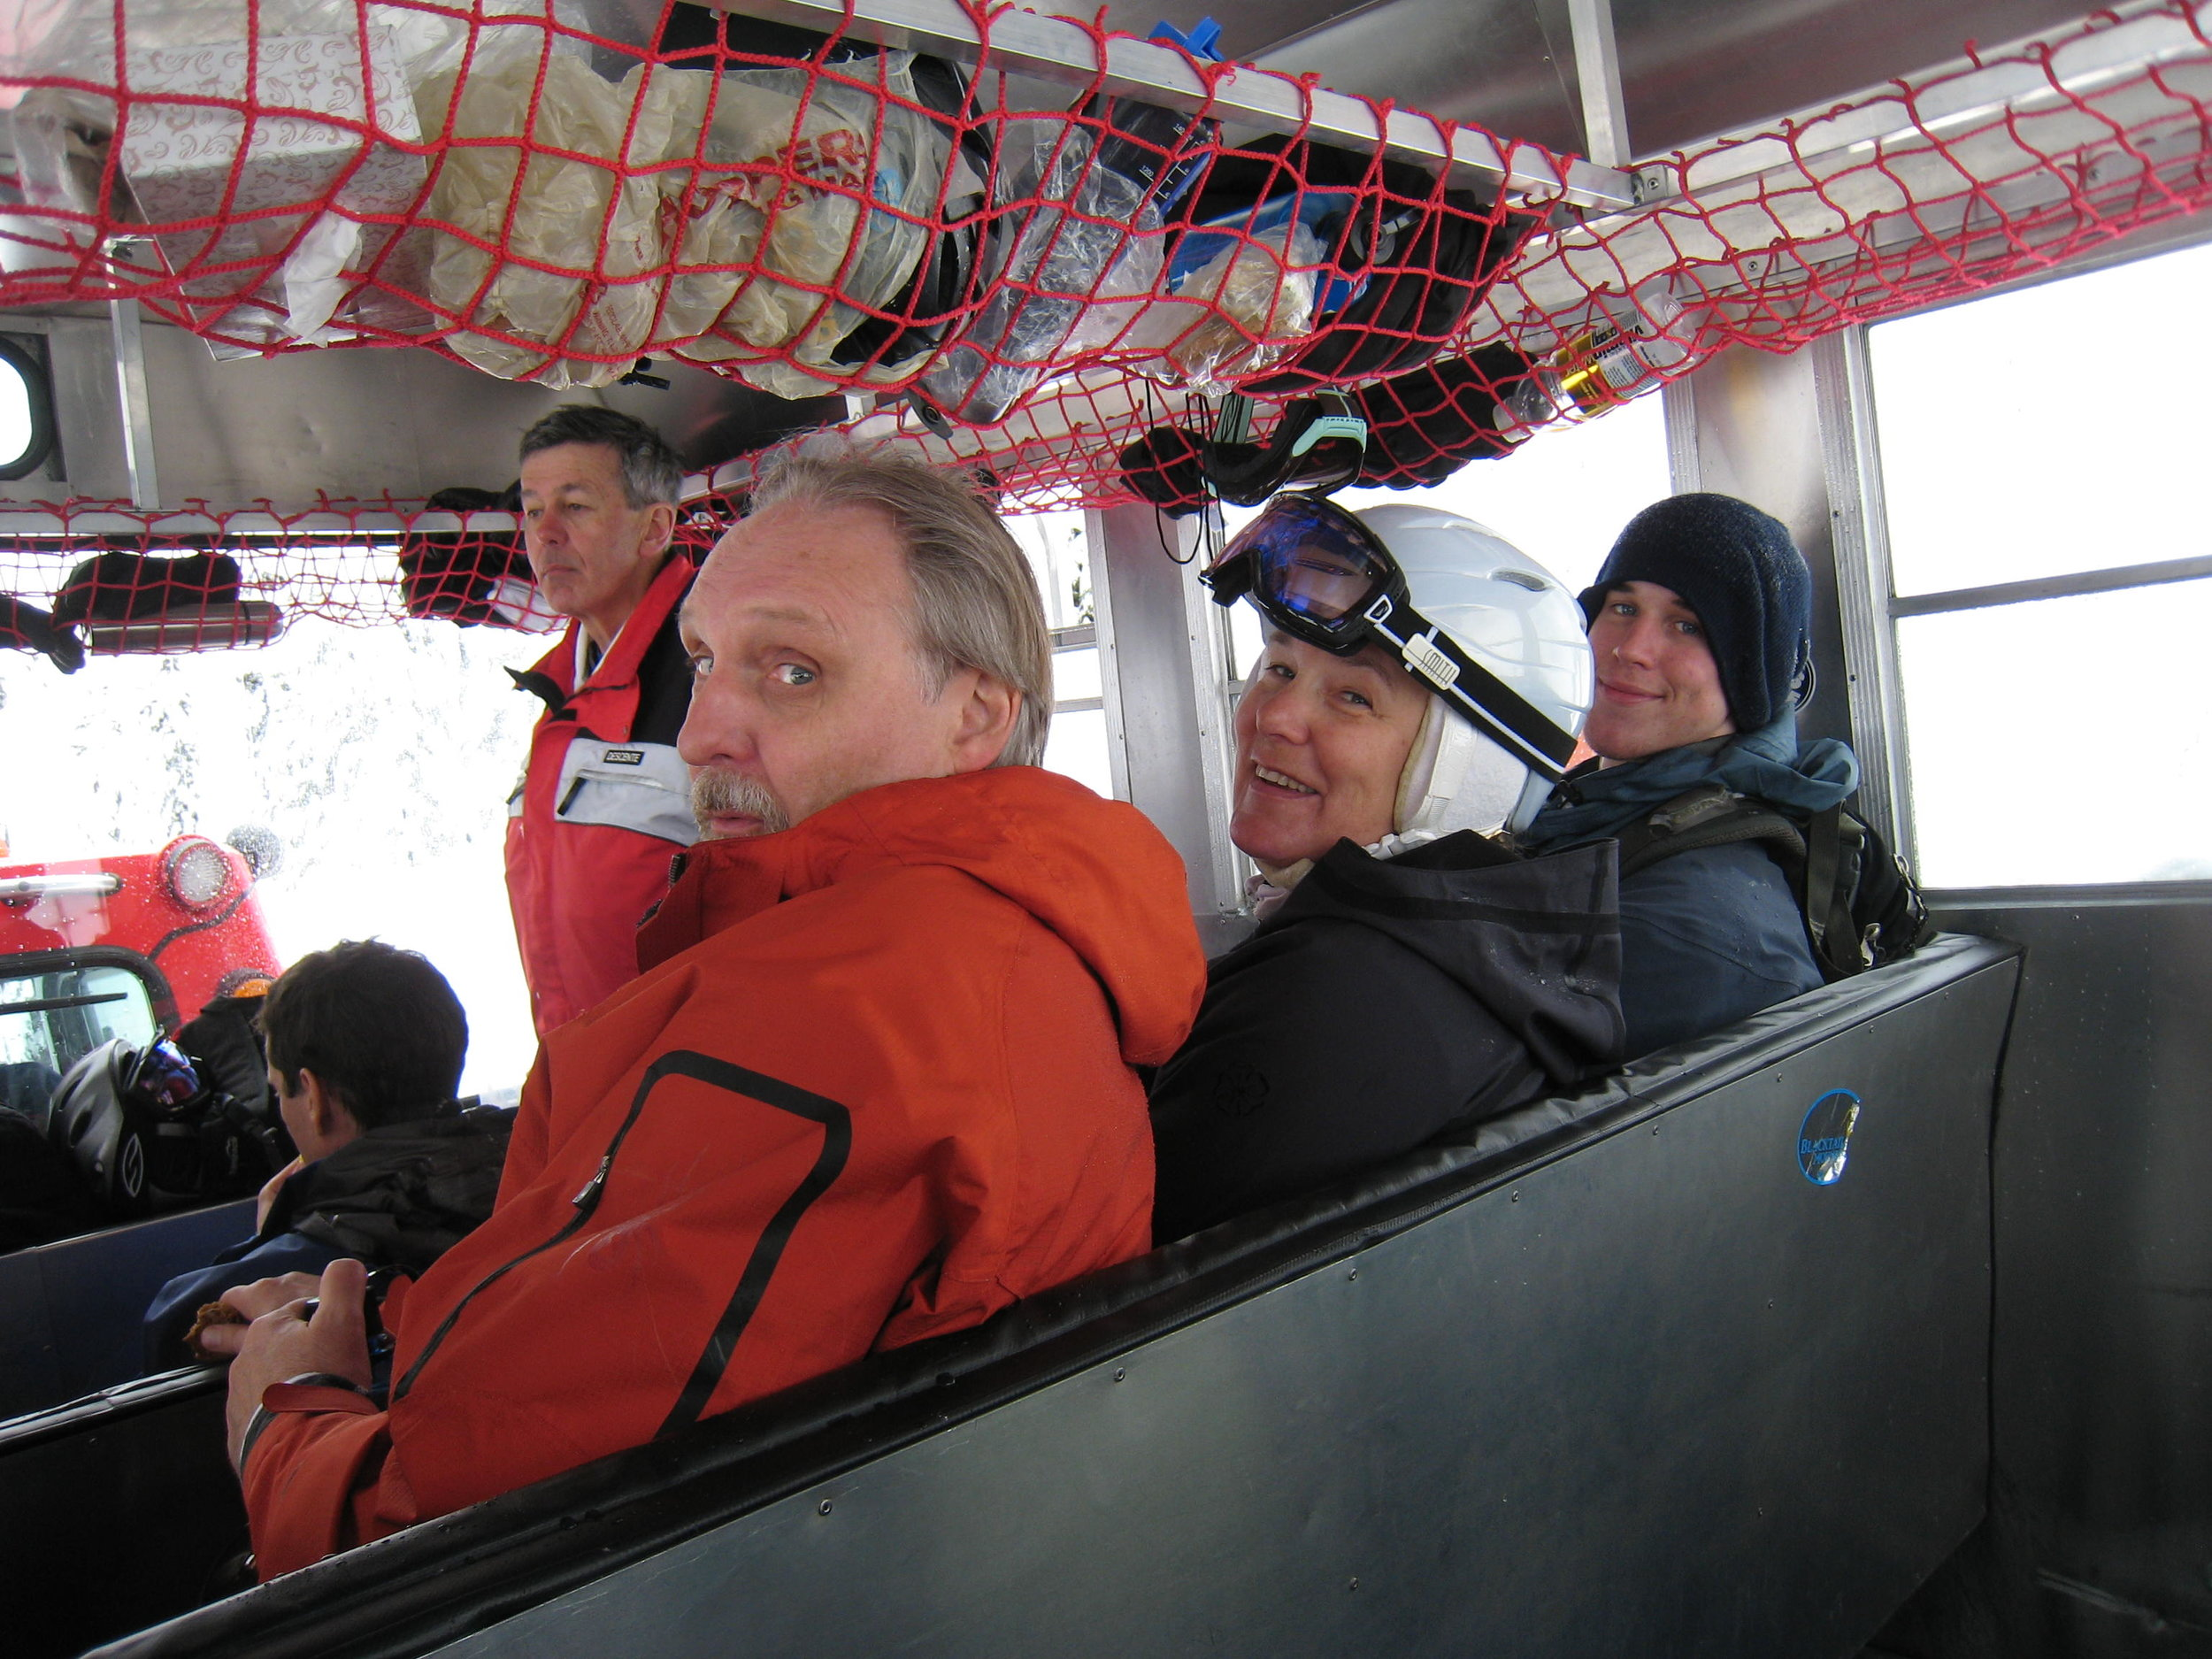 Inside the Sno-Cat